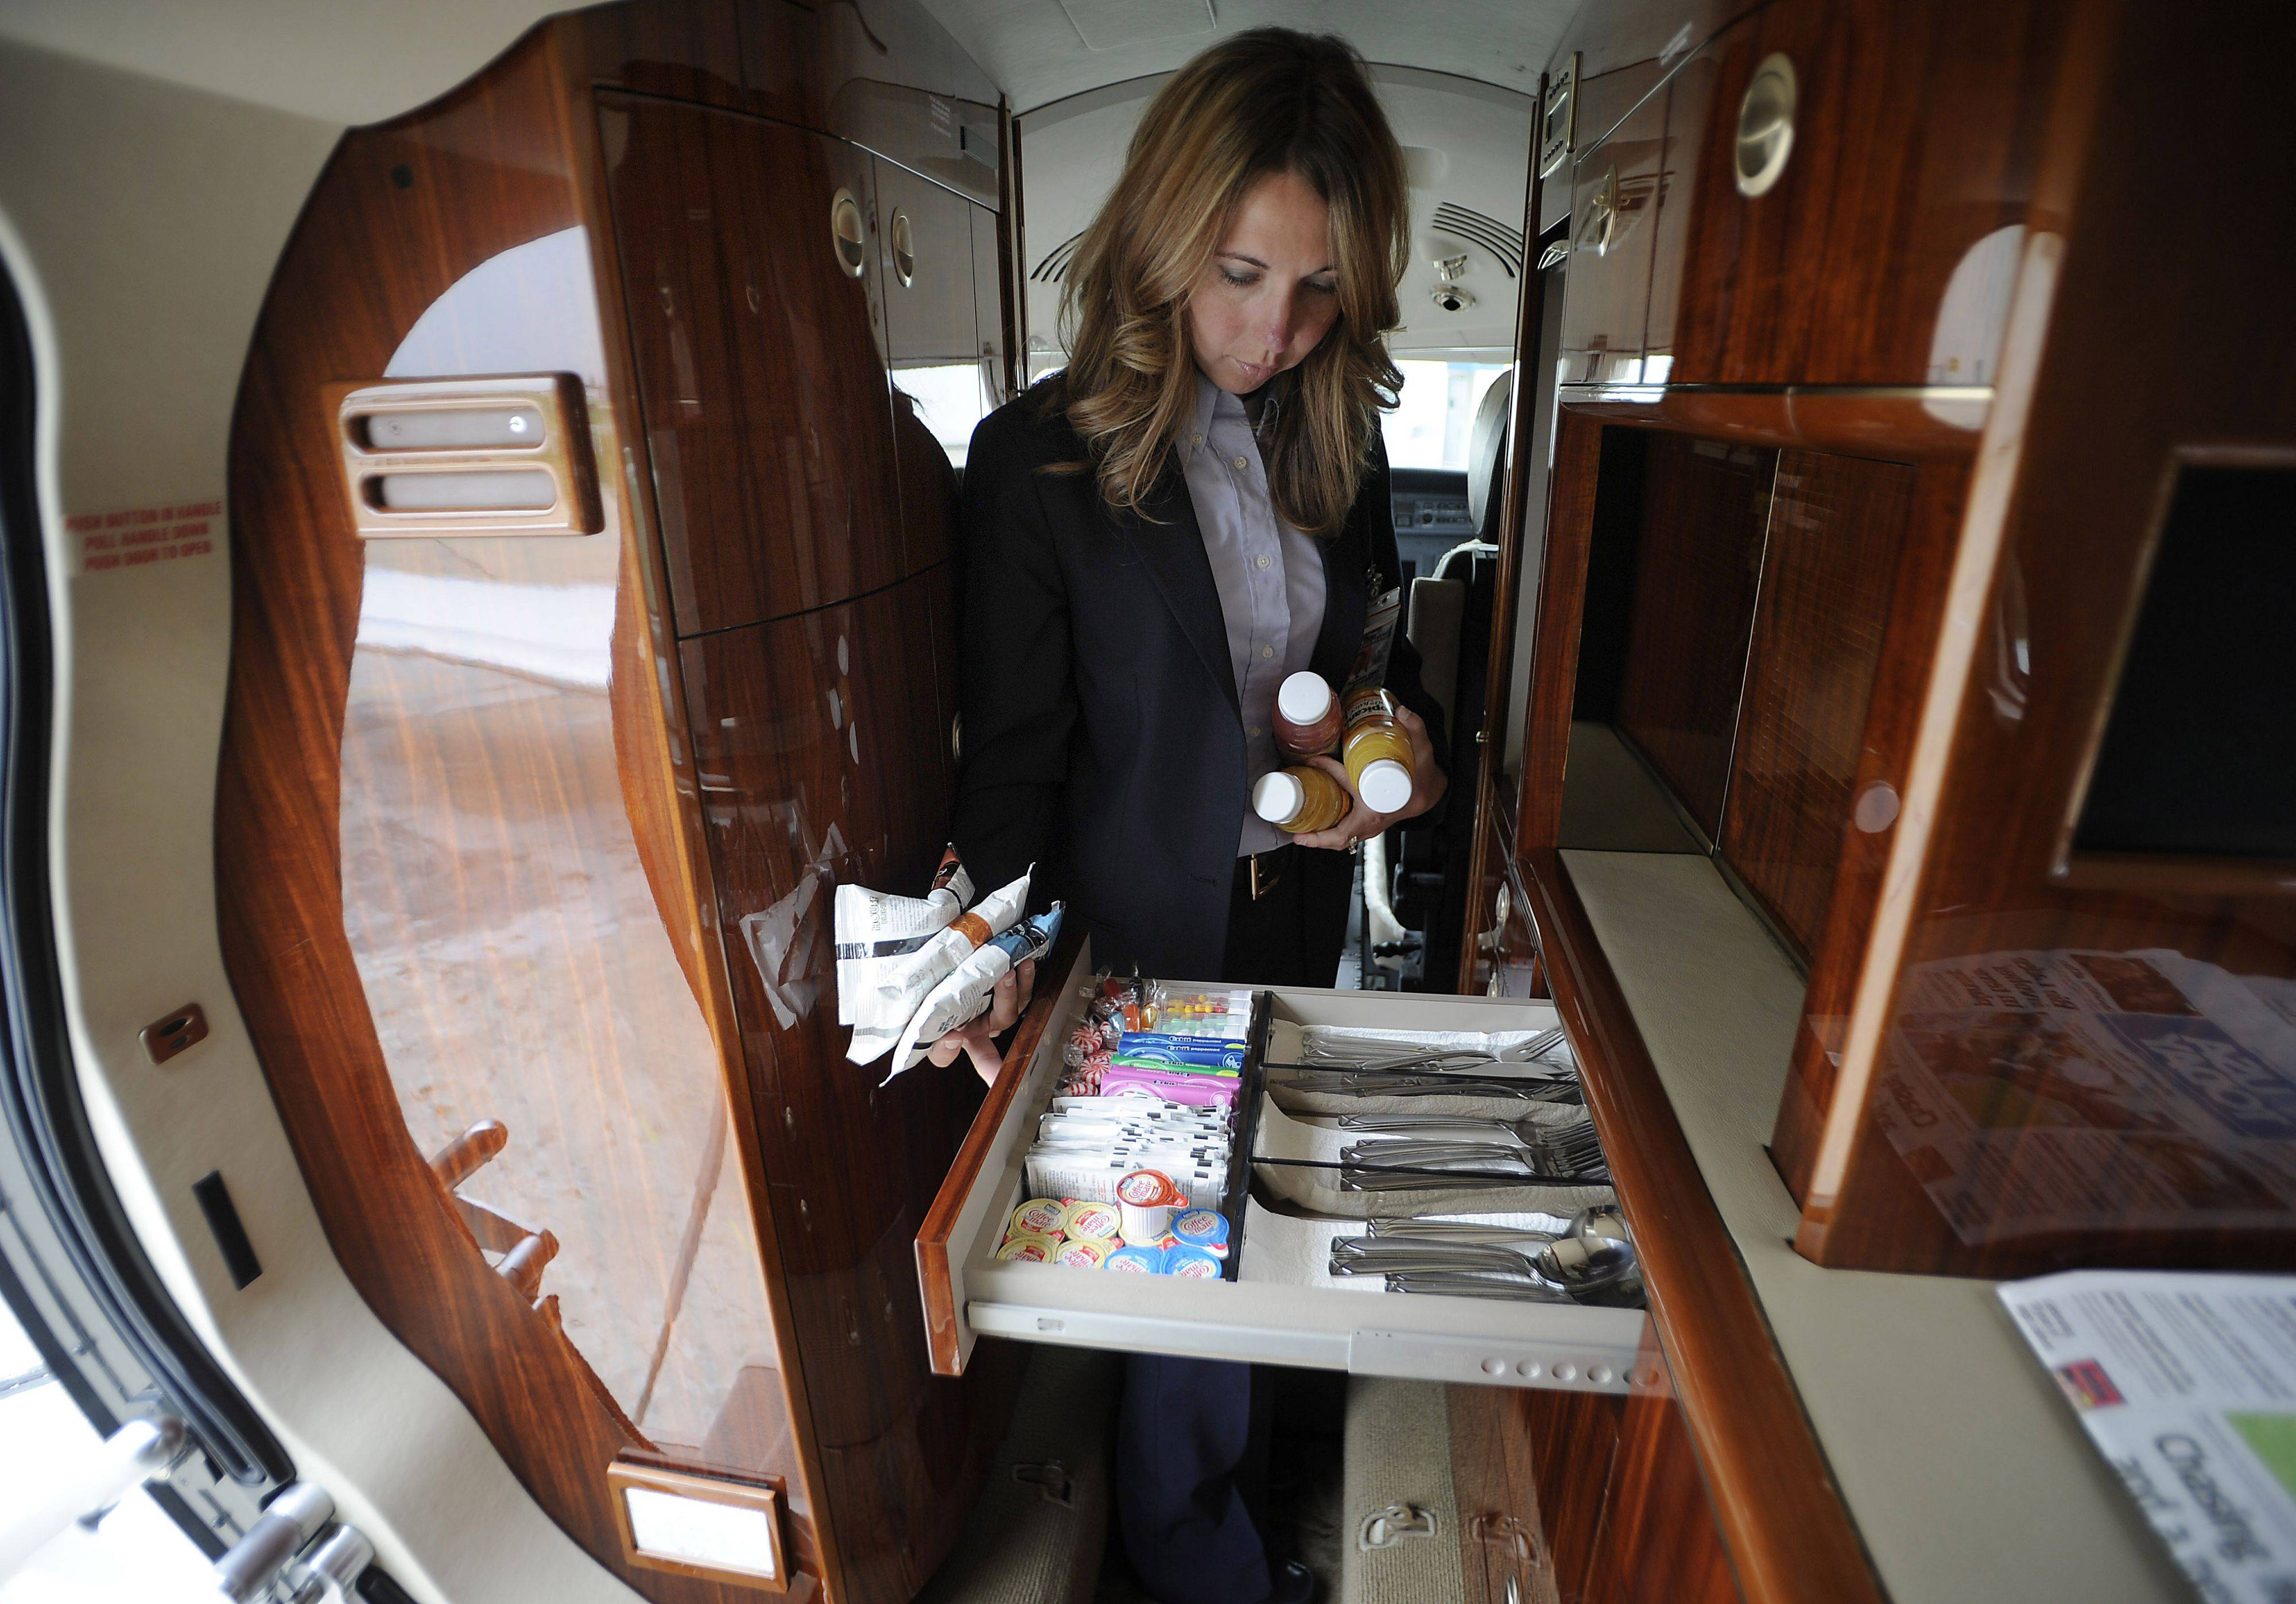 Sorenson checks to make sure all drinks and luxury items for the clients are stocked in her Citation Sovereign aircraft before she flies off to pick up her clients from Chicago Executive Airport.